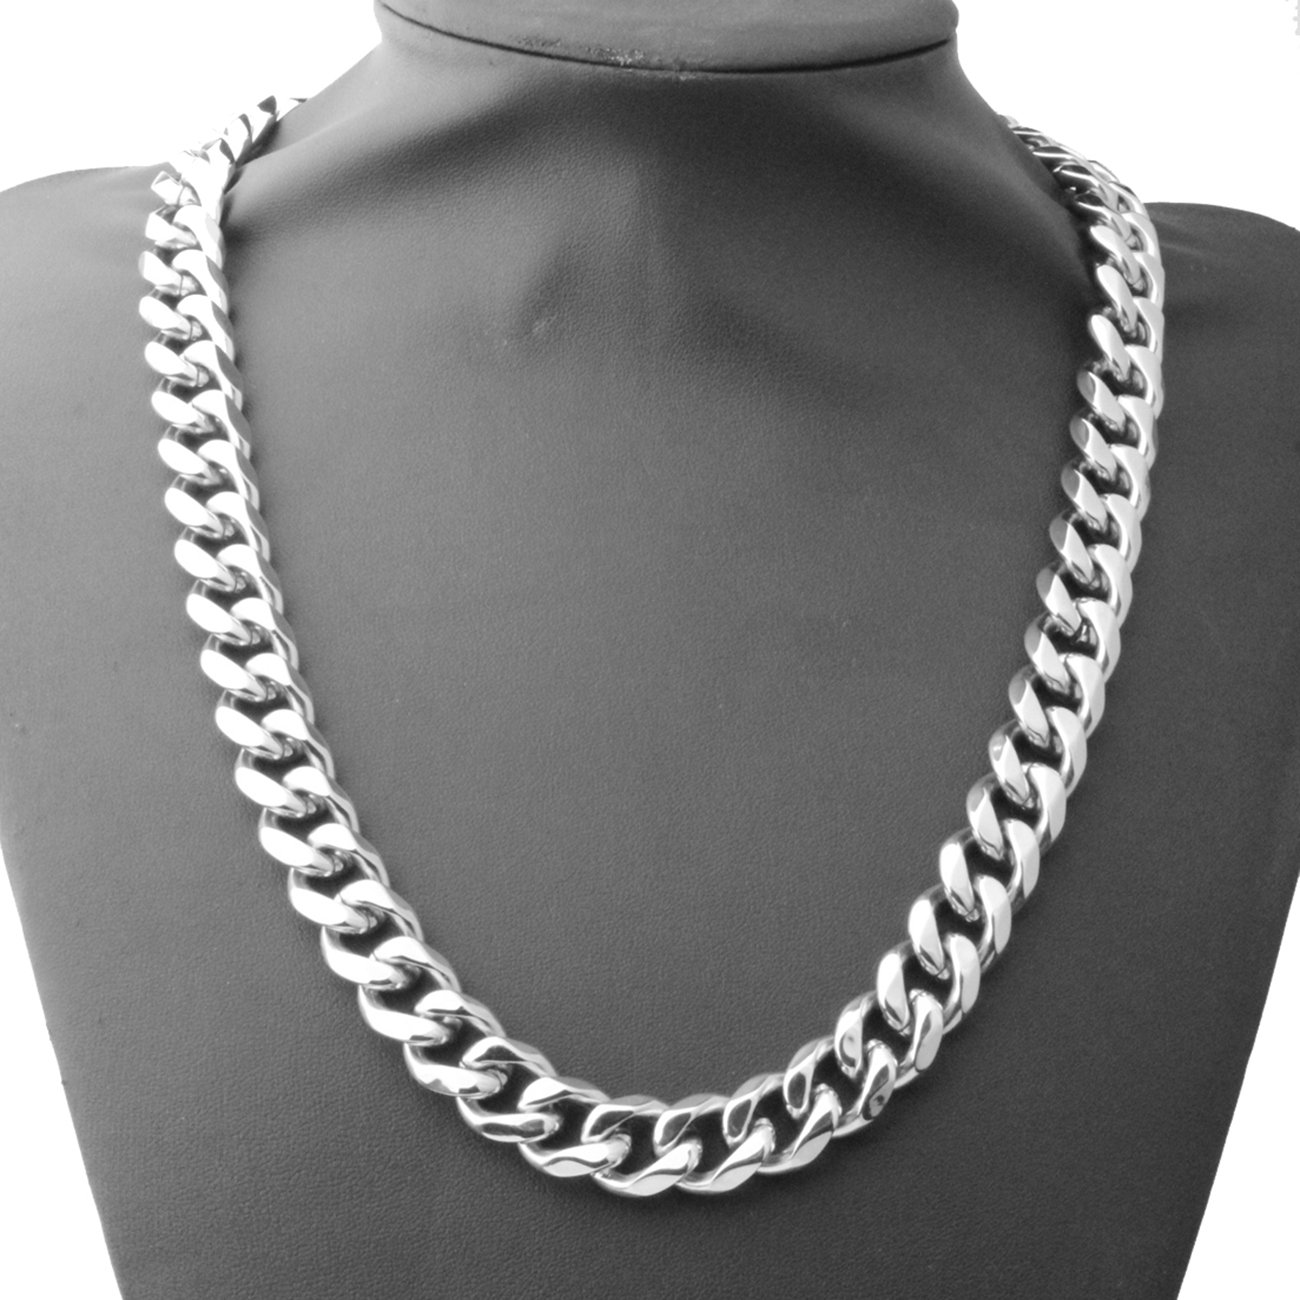 12//15mm Polishing Silver Stainless Steel Curb Link Chain Necklace Mens Neck Jewelry,16-40